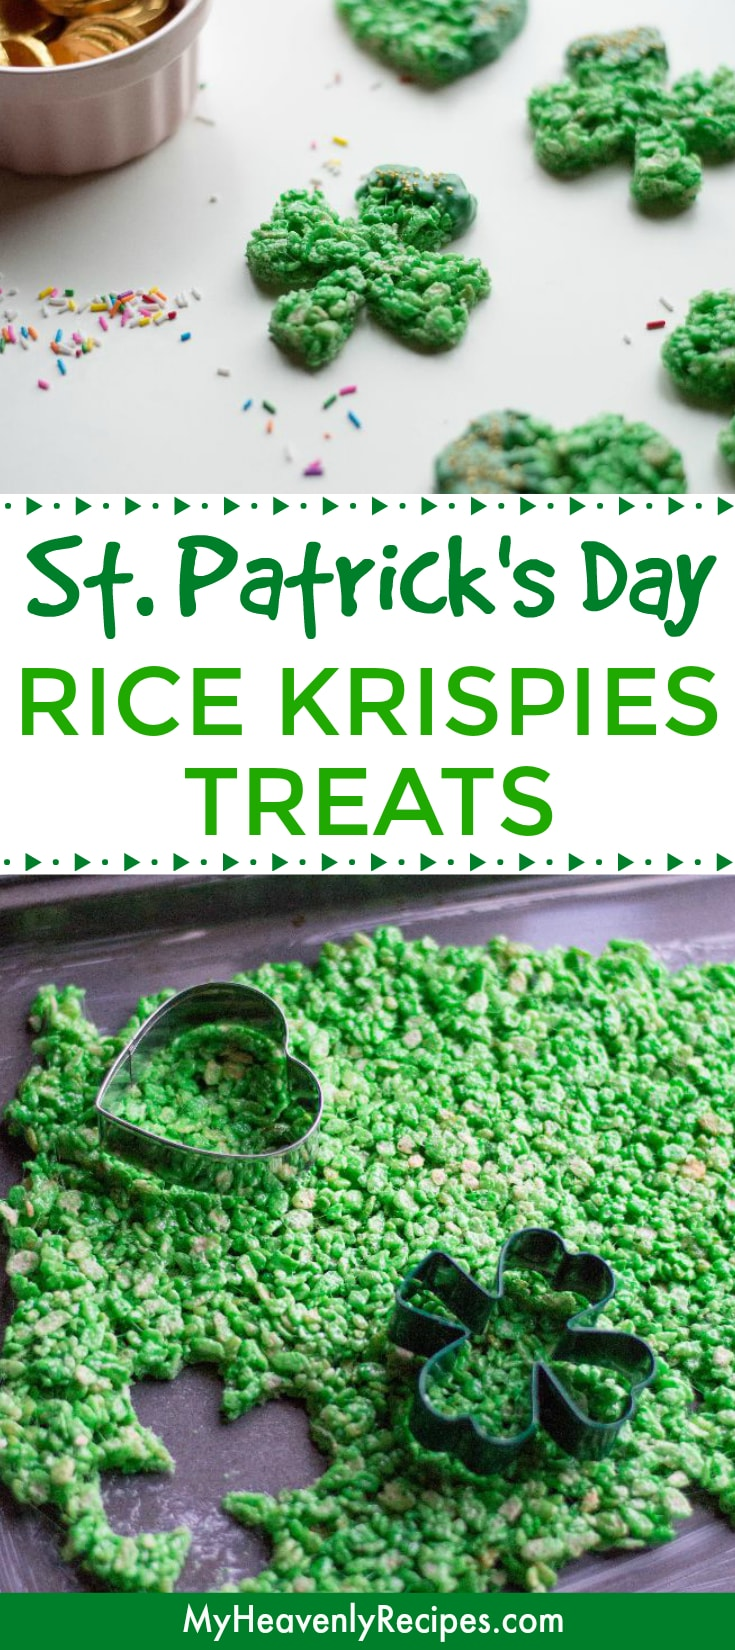 Looking for a FUN and EASY St. Patrick's Day dessert? You'll love making these St. Patrick's Day Rice Krispies Treats! They're so easy to make and are perfect for St. Patrick's Day parties. Great for lunchboxes too! #stpatricksday #ricekrispies #dessertrecipe #ricekrispiestreats